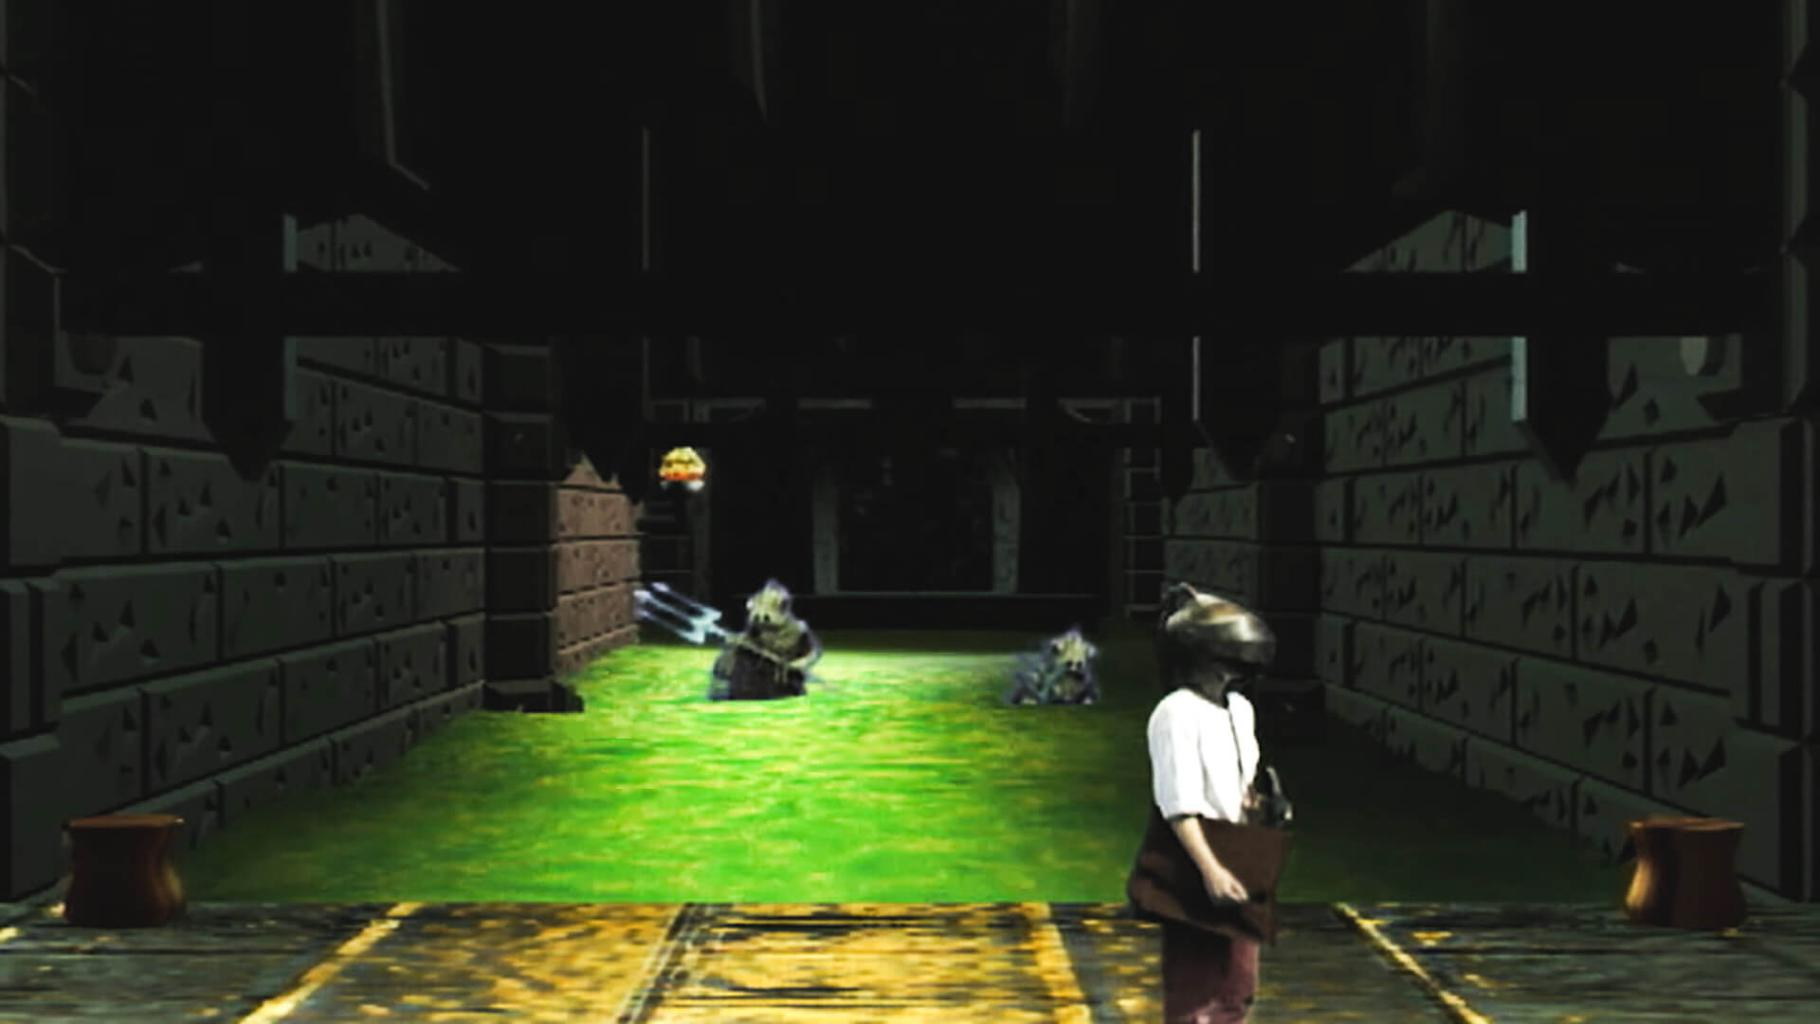 A team is pursued by miremen in the sewers. Team 5 from Series 8 of Knightmare (1994).